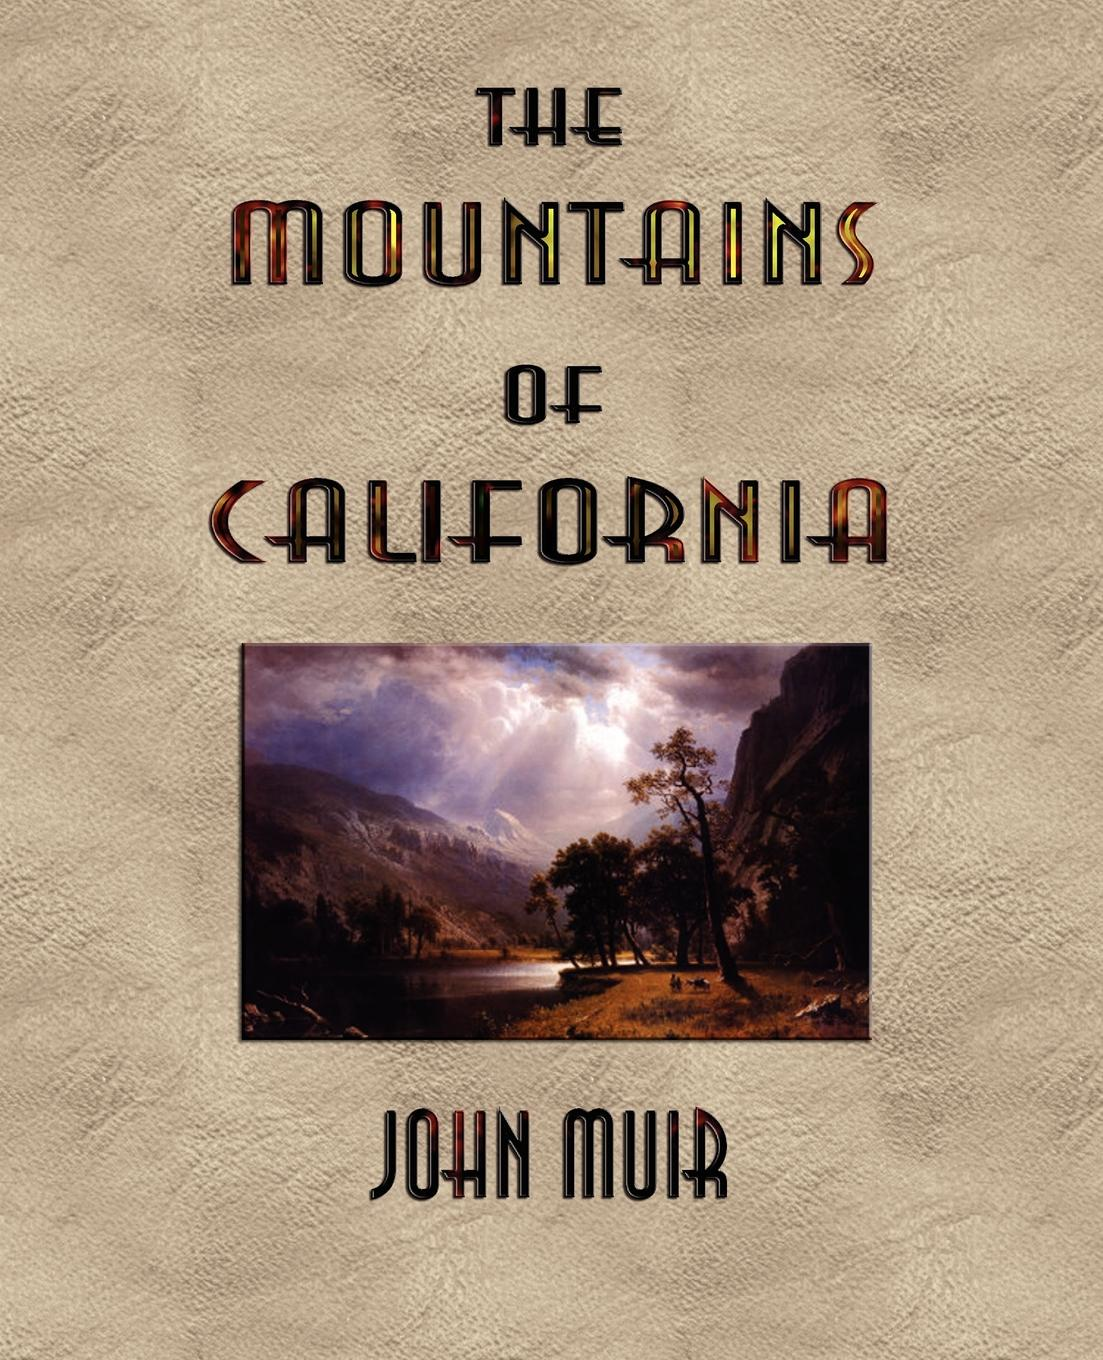 John Muir The Mountains of California - Illustrated deathlok the demolisher